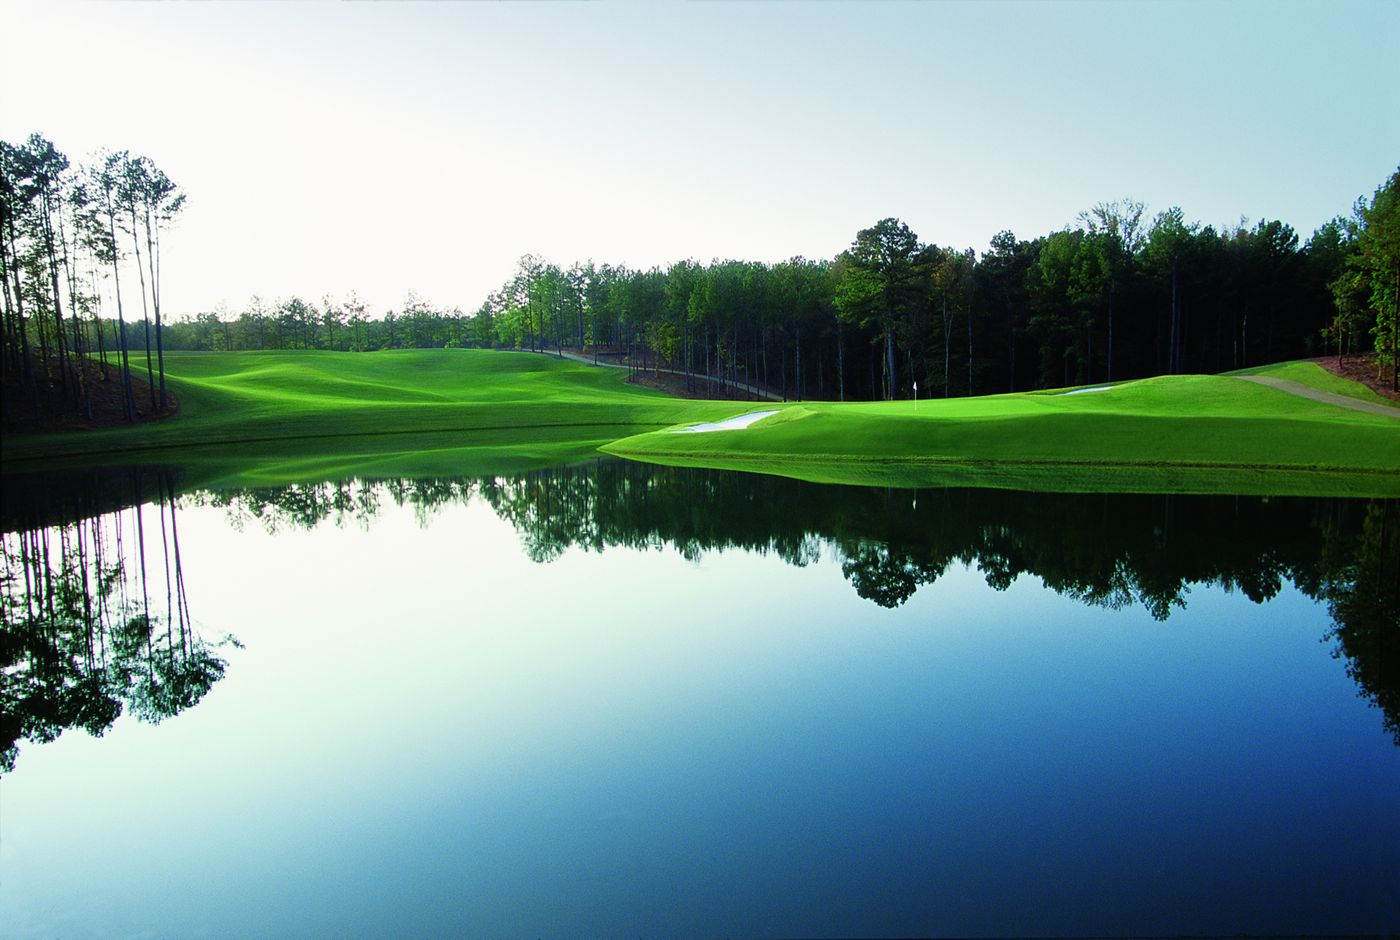 The Reynolds Kingdom of Golf, presented by TaylorMade image 1